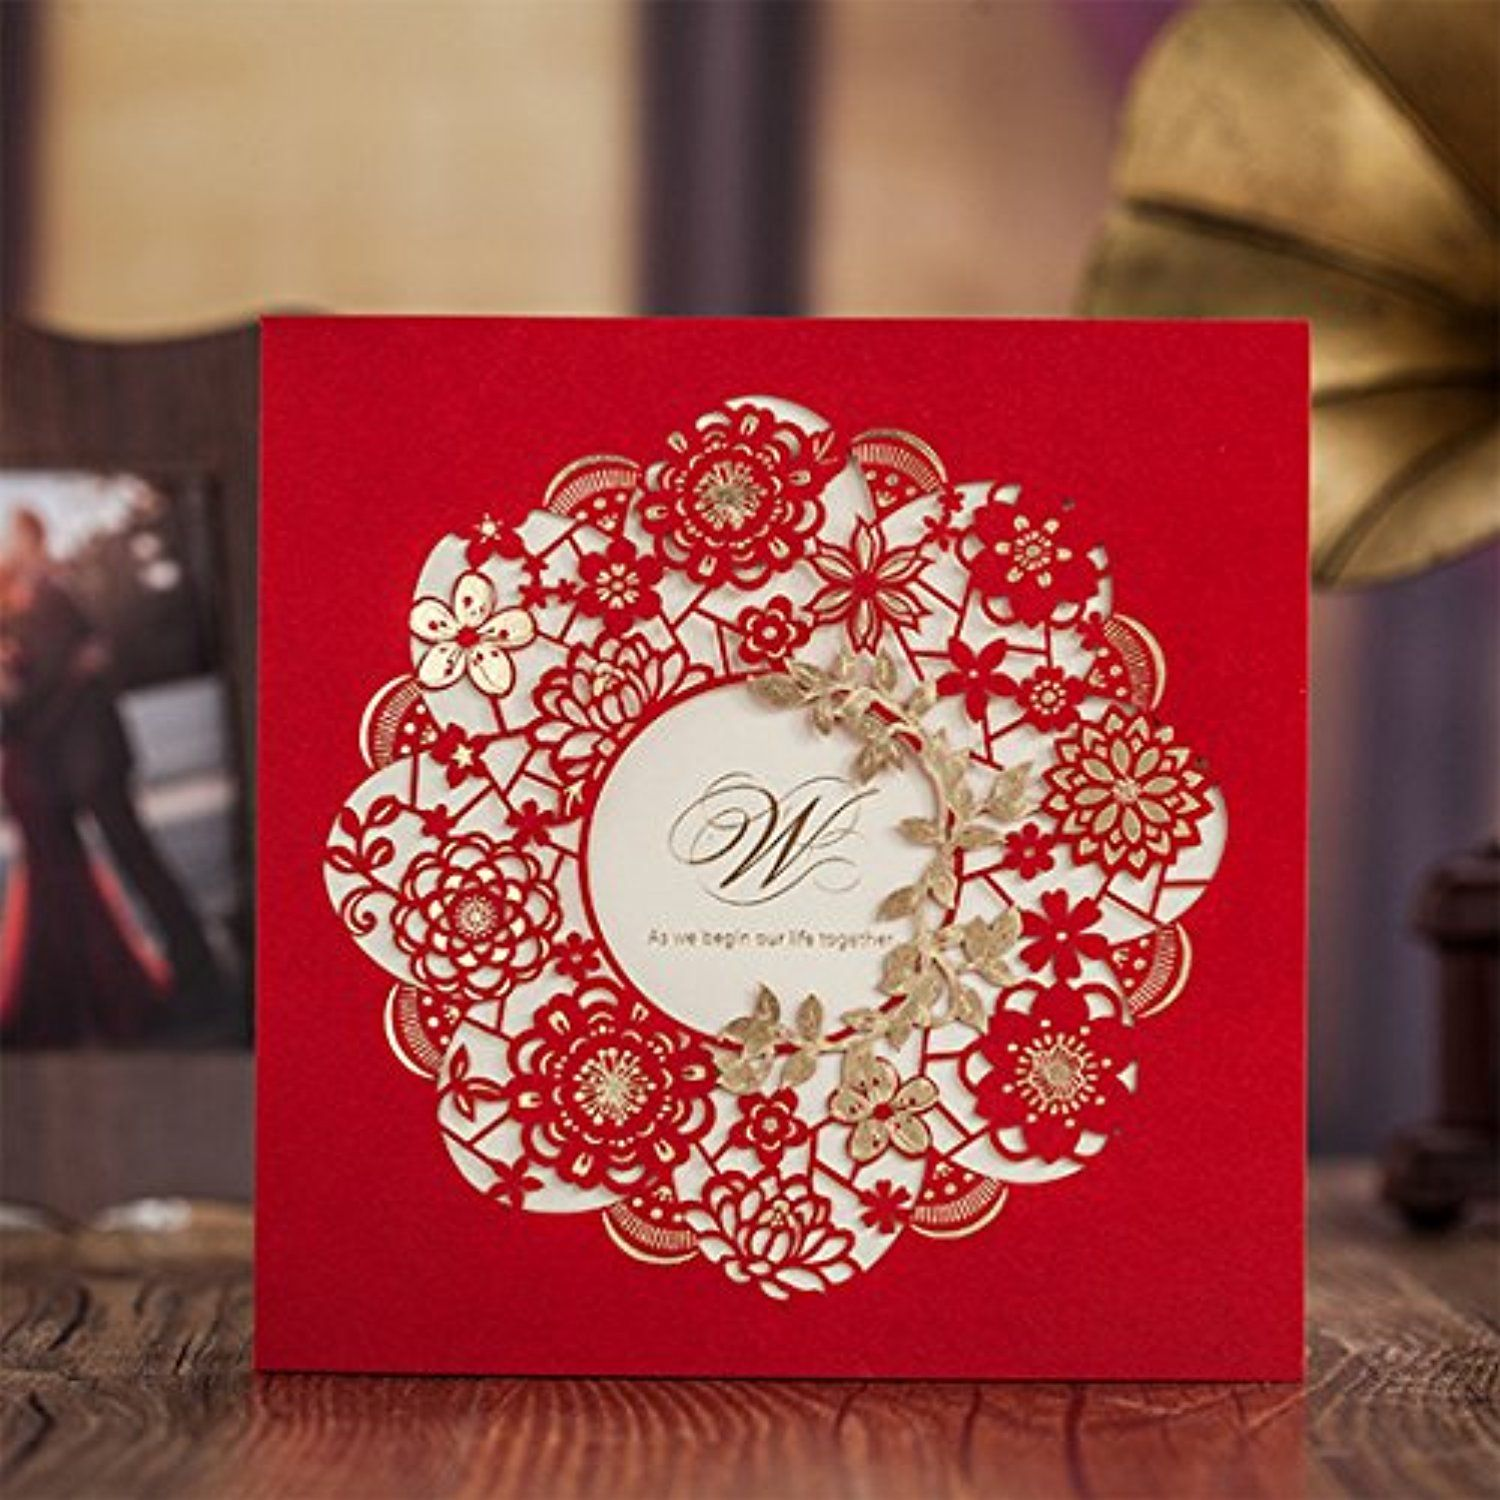 YUFENG 24PCS Laser Cut Hollow Out Wedding Invitations Cards Kit for ...